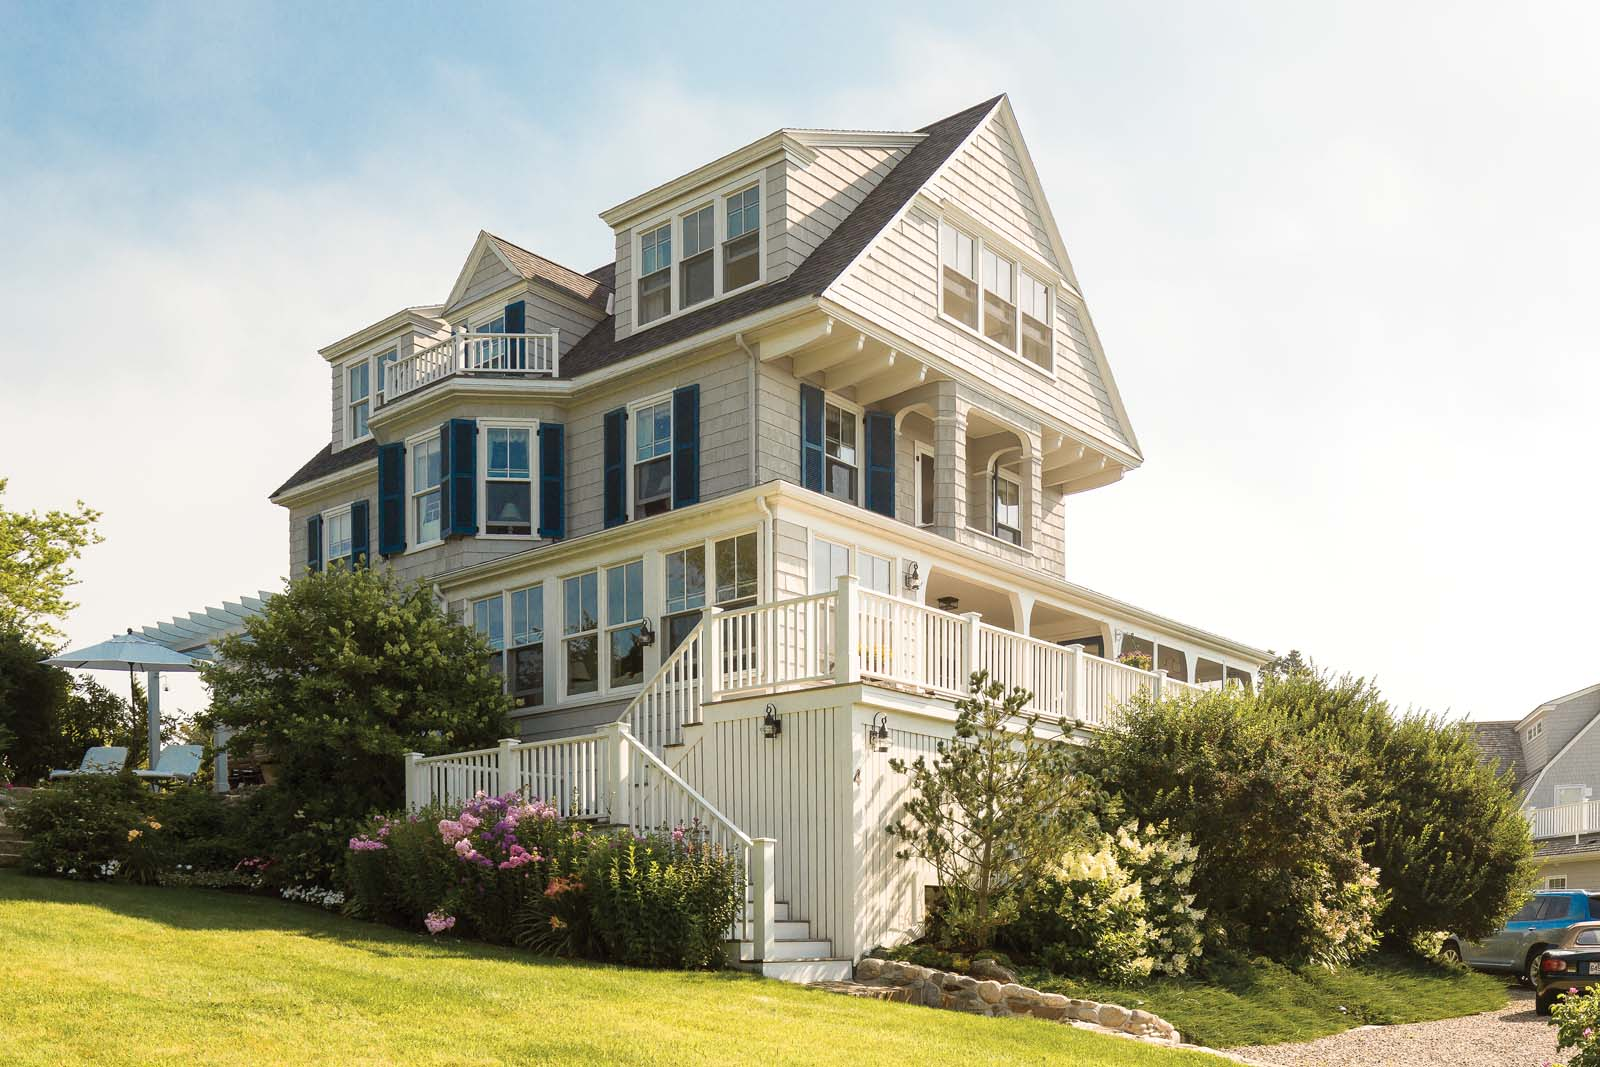 Kennebunk cottage charm maine home design for Maine home and design